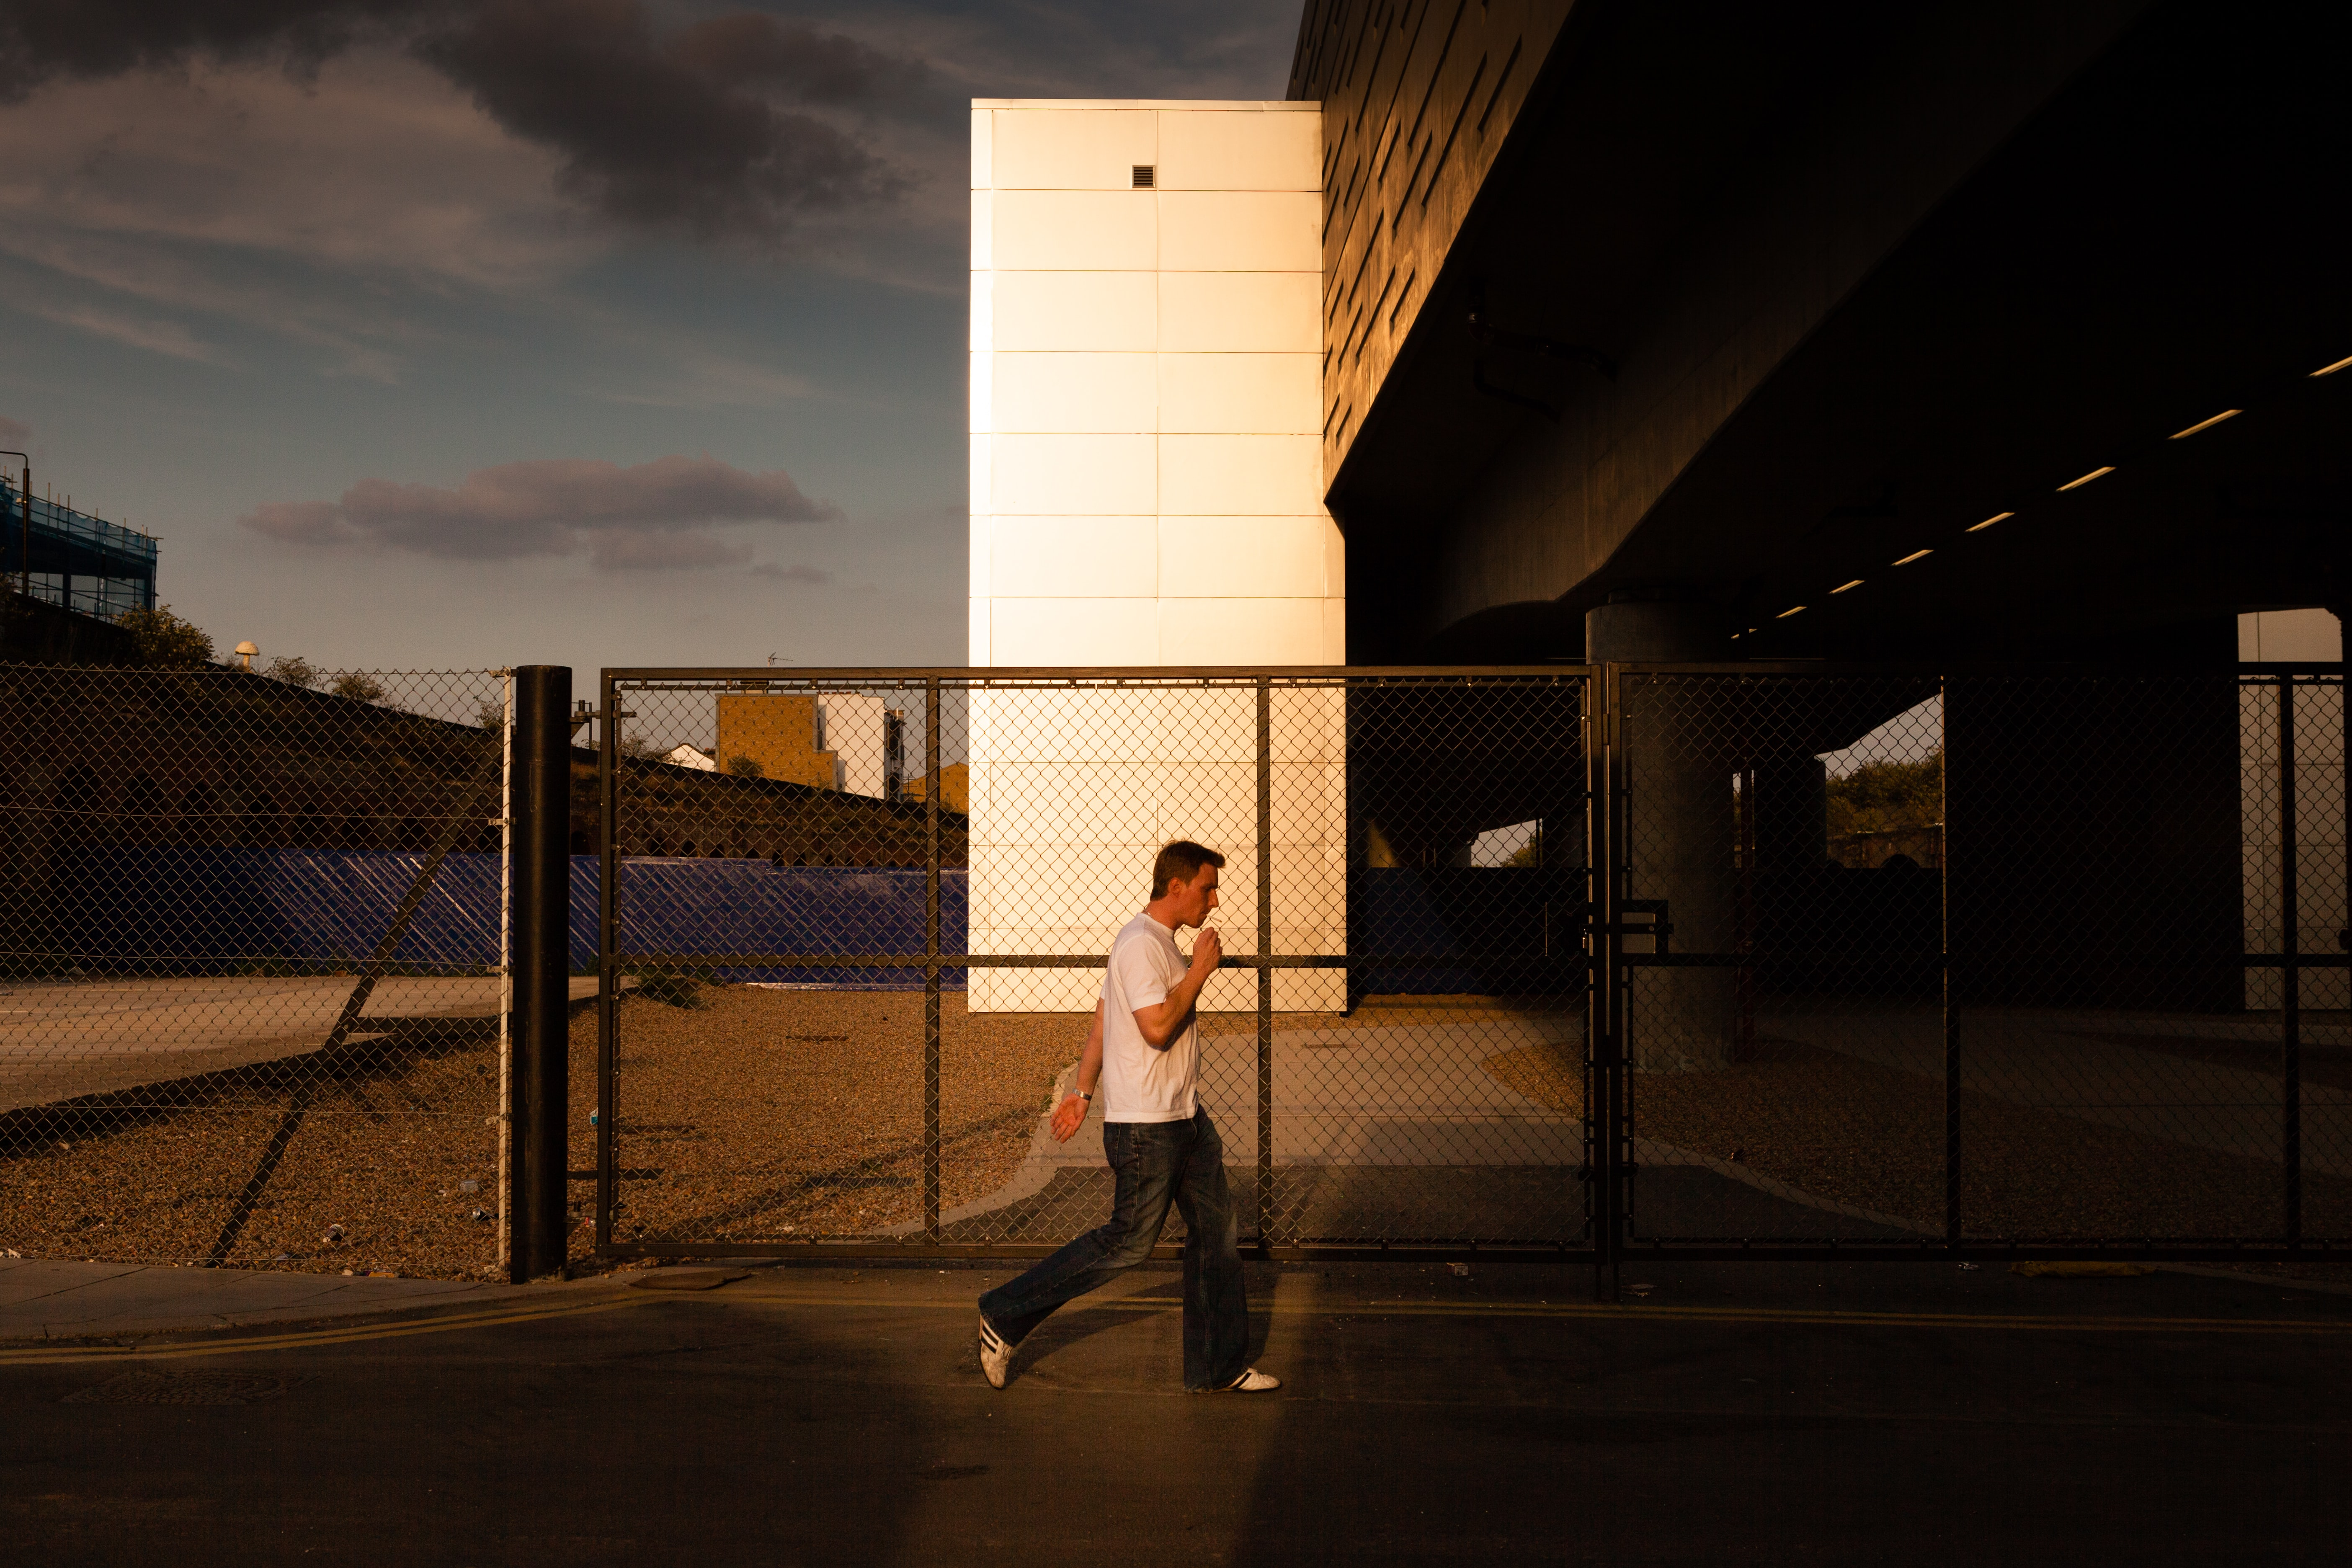 man walking in front of chain link fence